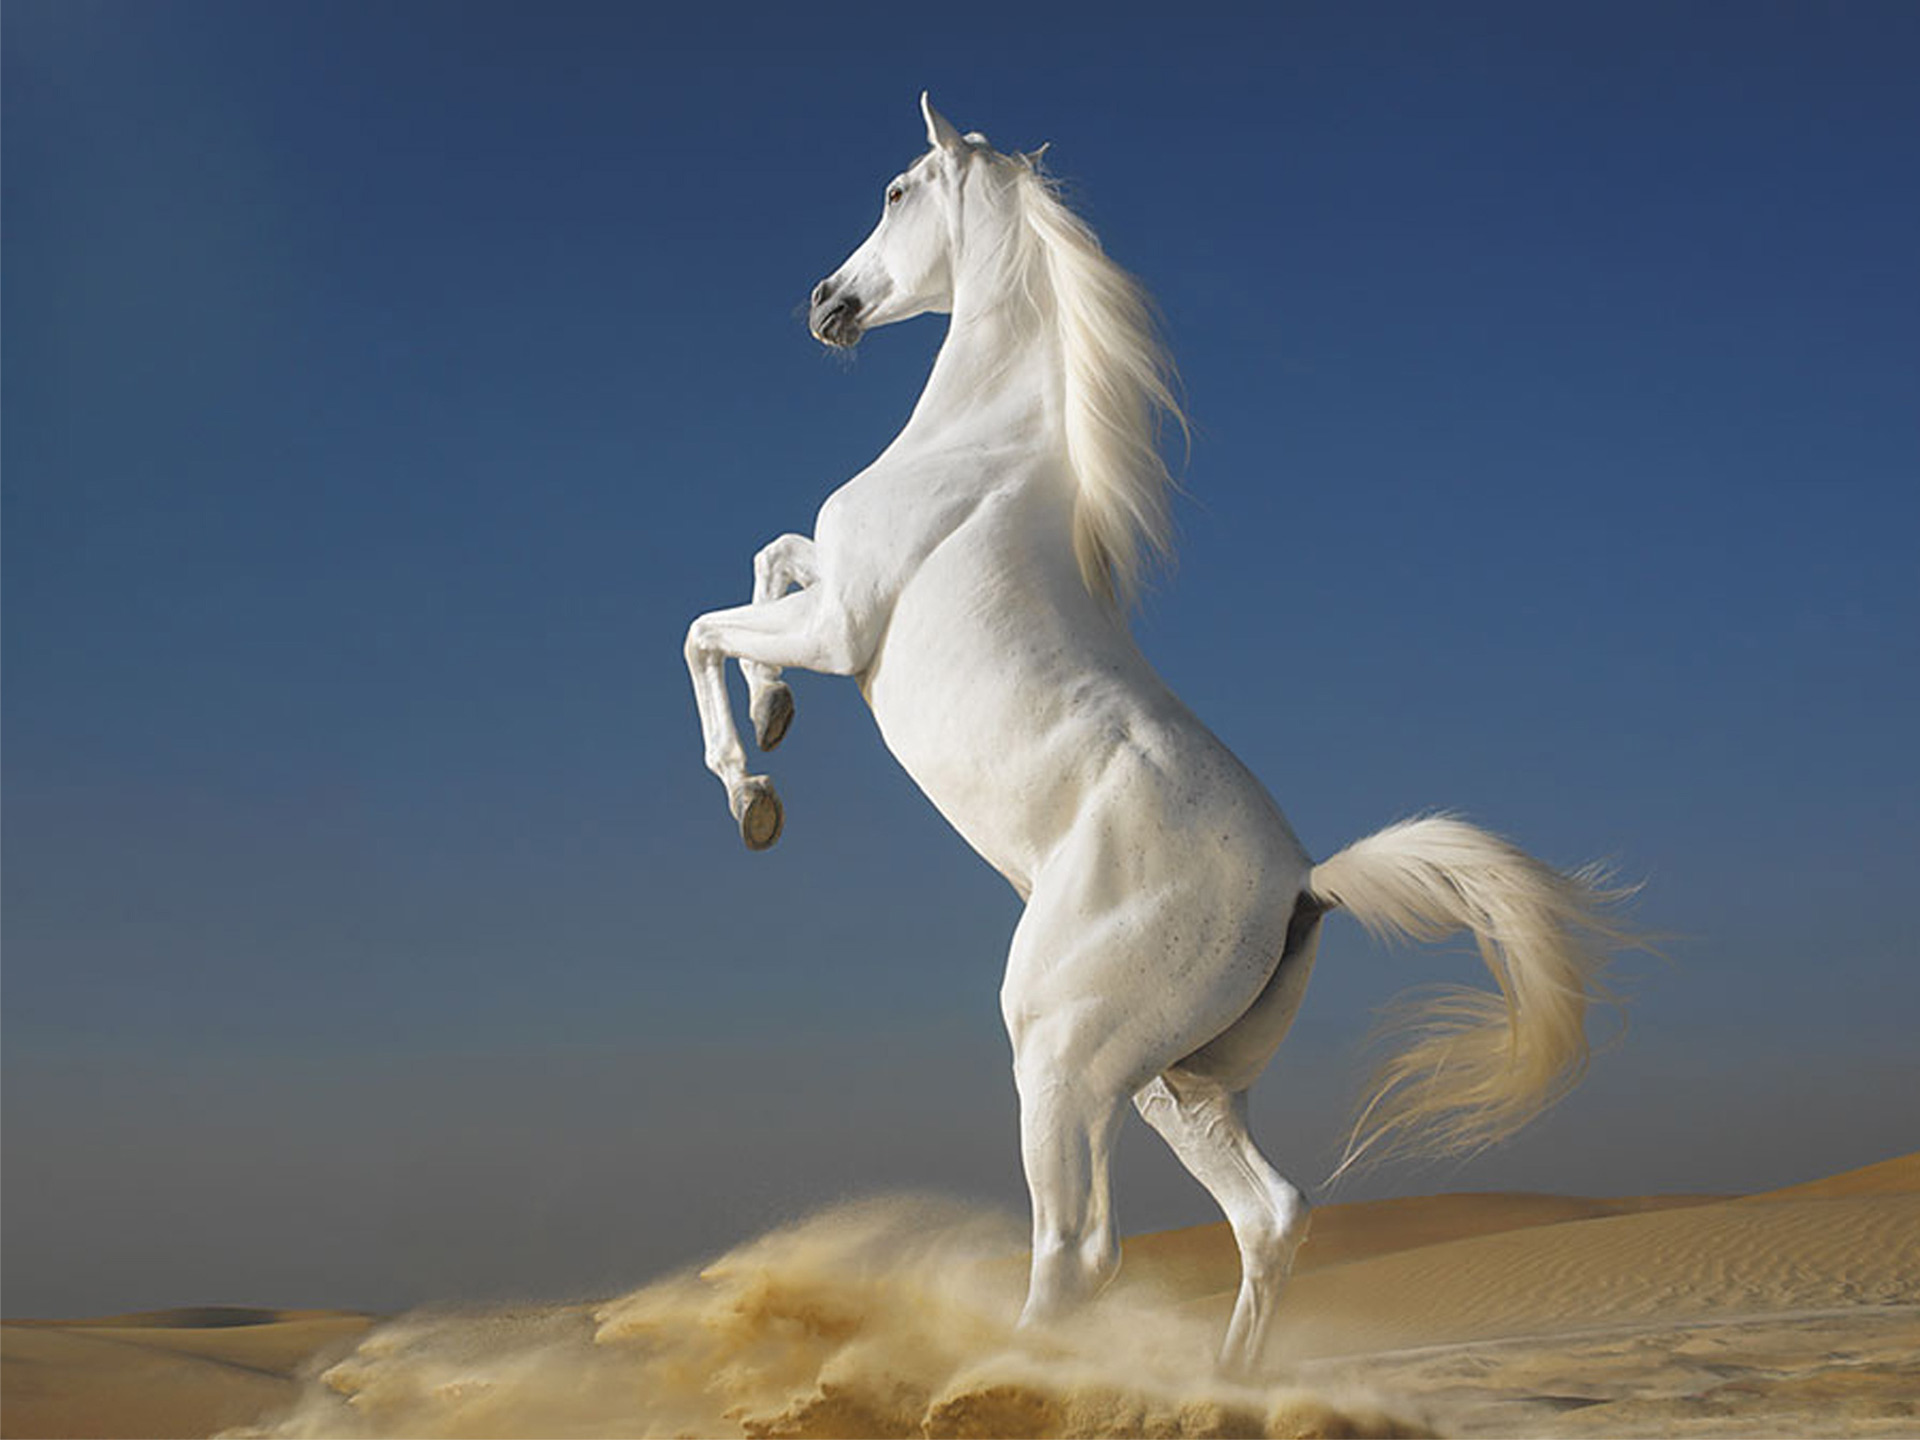 Horse best computer backgrounds Desktop hd Wallpaper and make this 1920x1440